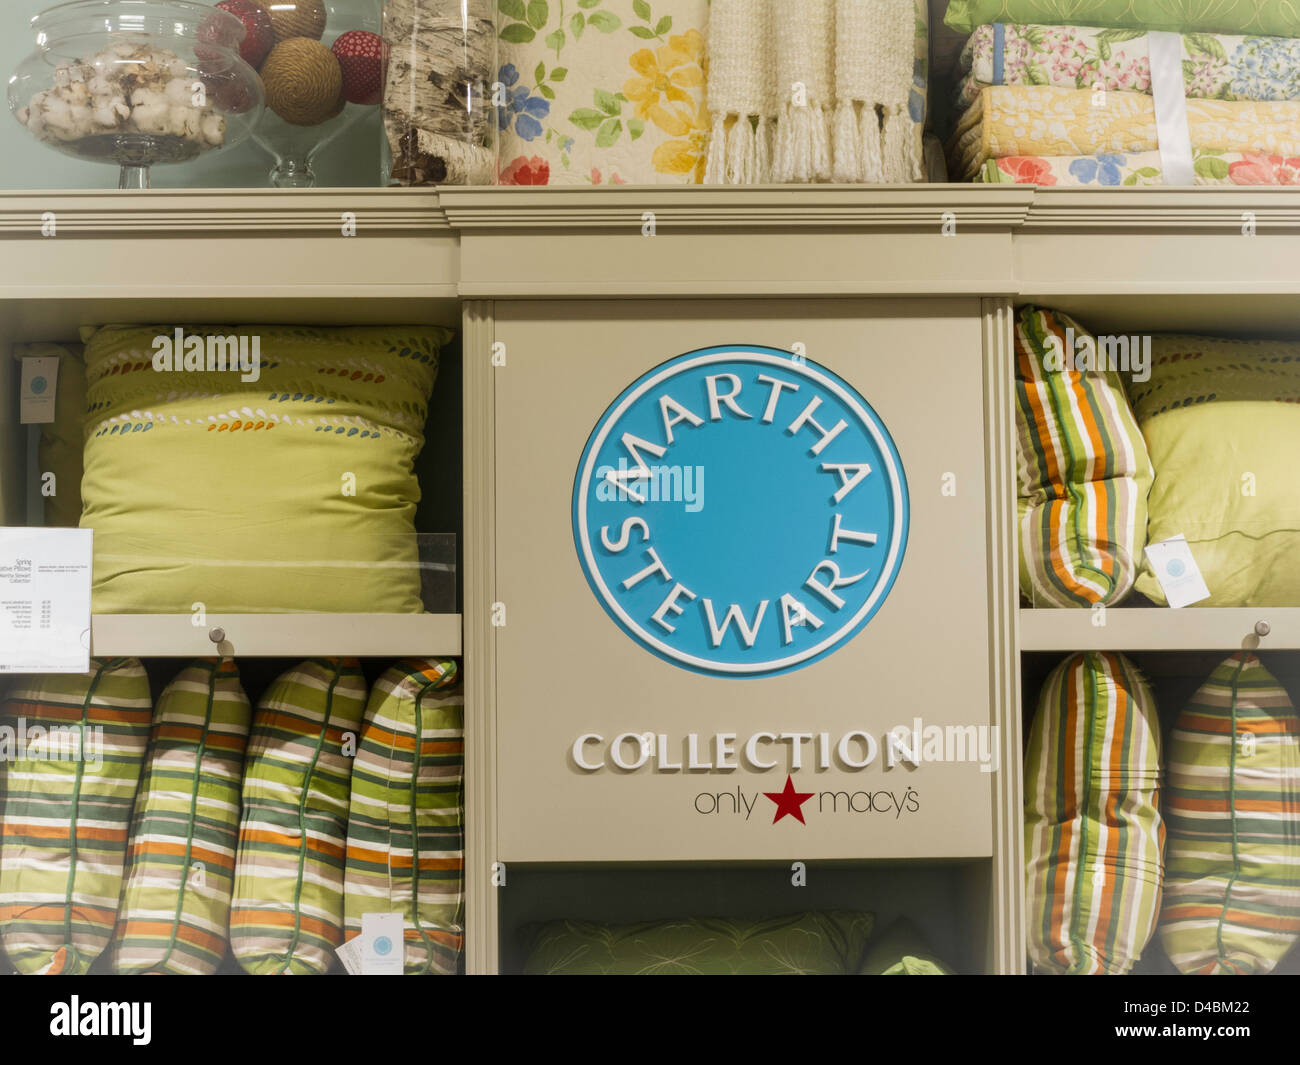 Dunelm Mill Kitchen Curtains Bedding Display At The Retail Store Stock Photo Royalty Free